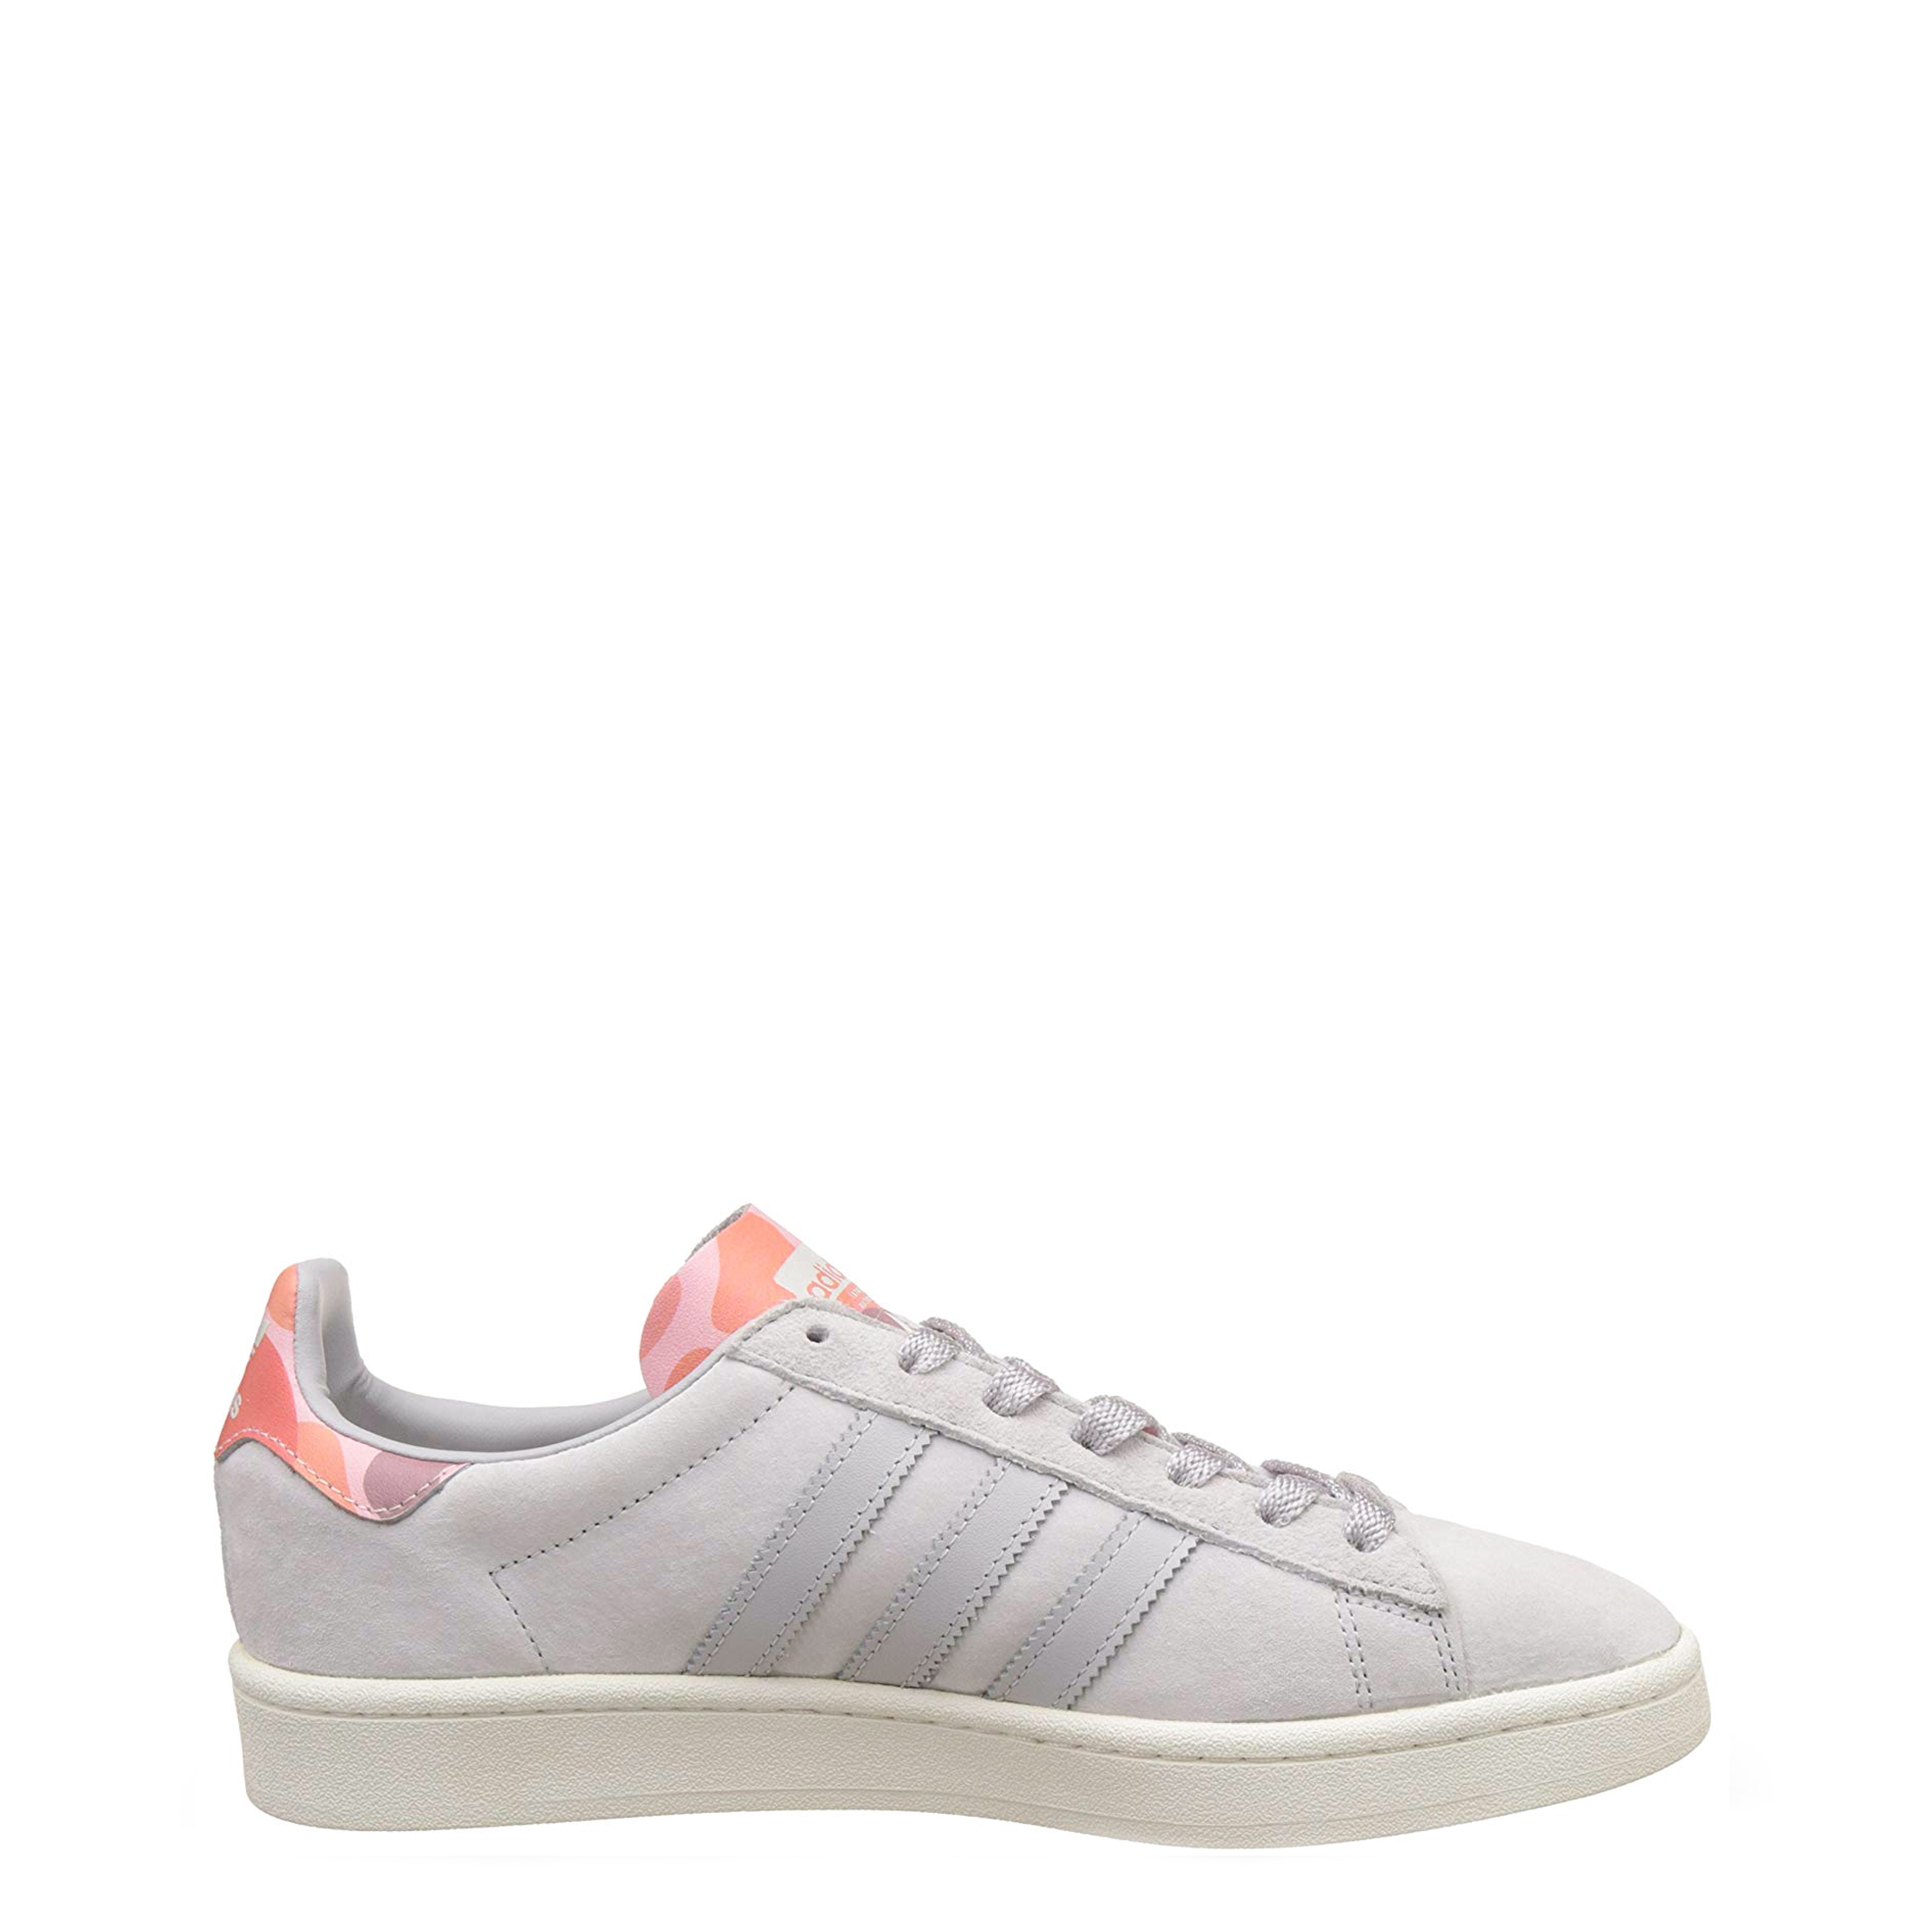 Adidas ADULTS_CAMPUS Unisex Bianco 97928